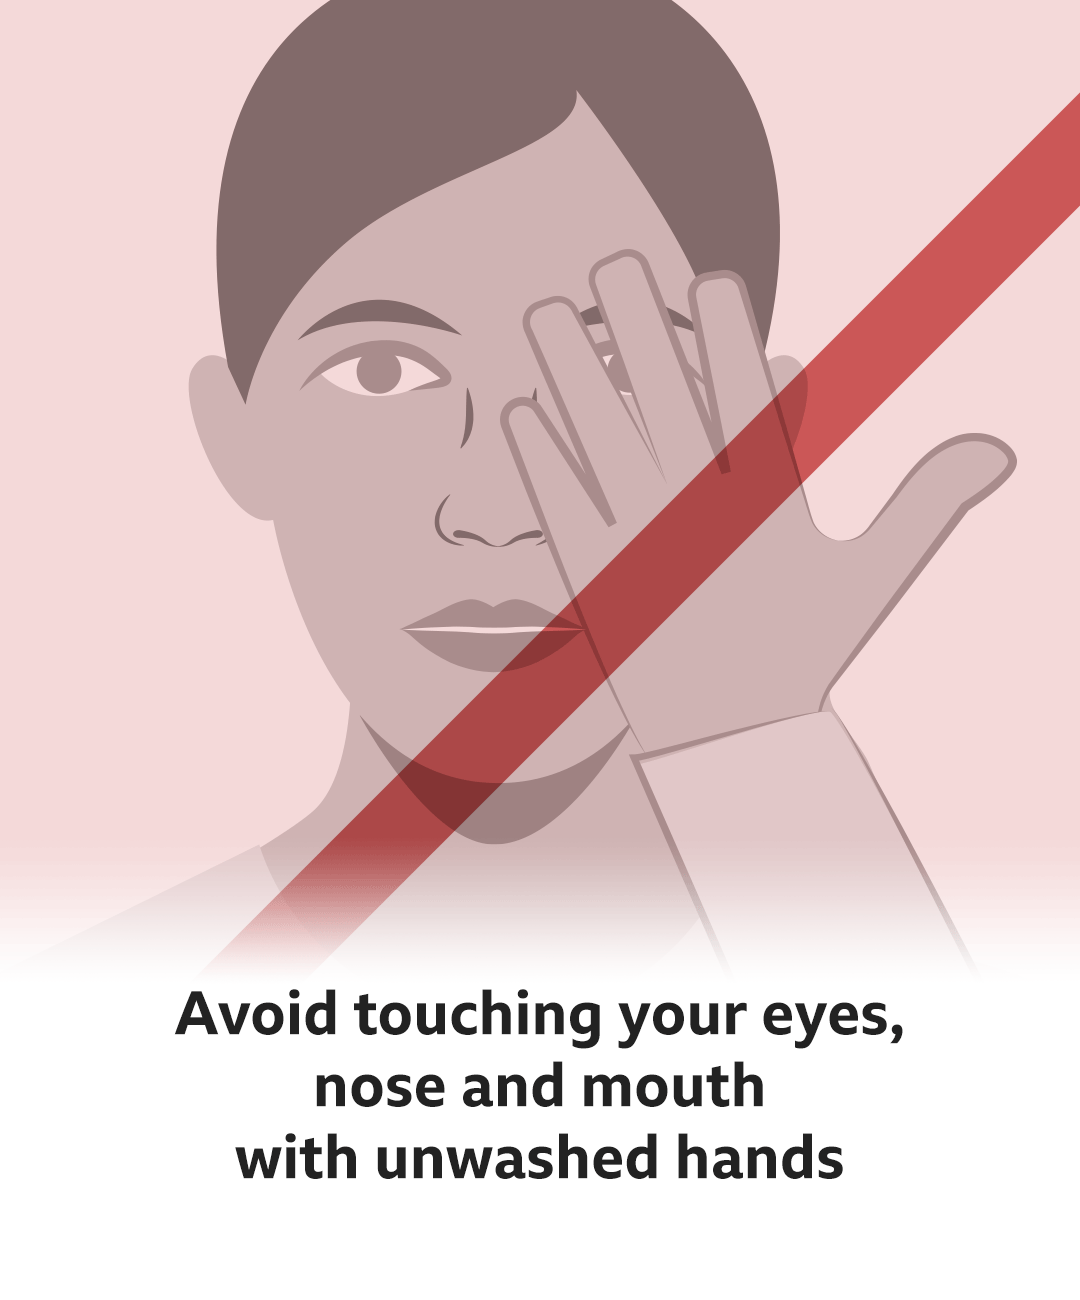 Text reads: Avoid touching your eyes, nose and mouth with unwashed hands